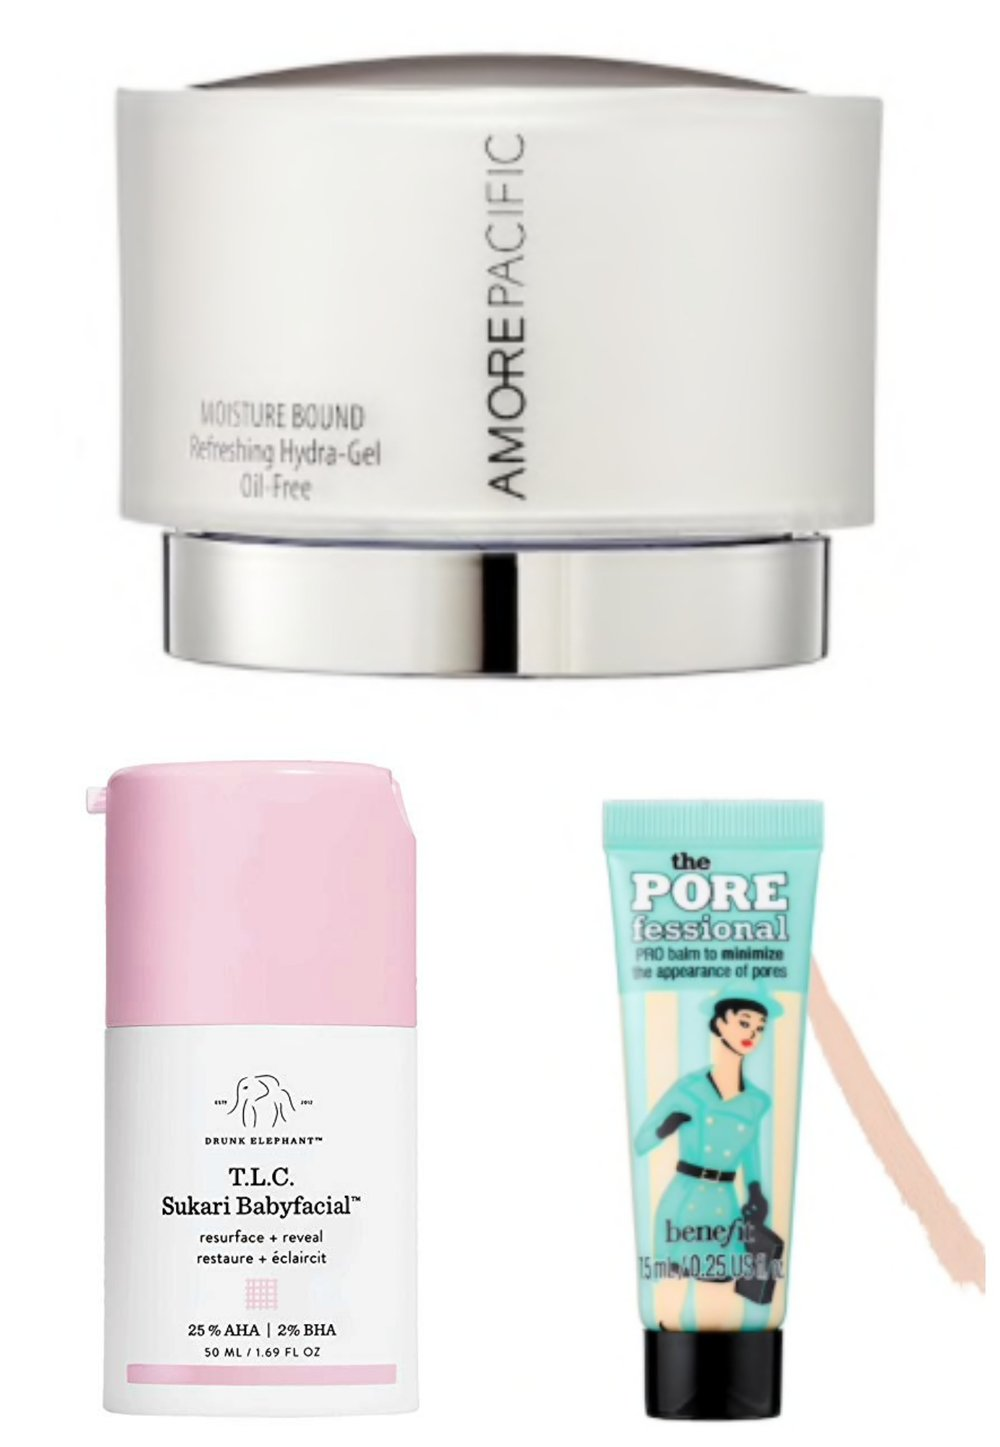 Sephora favorite skin products.jpg